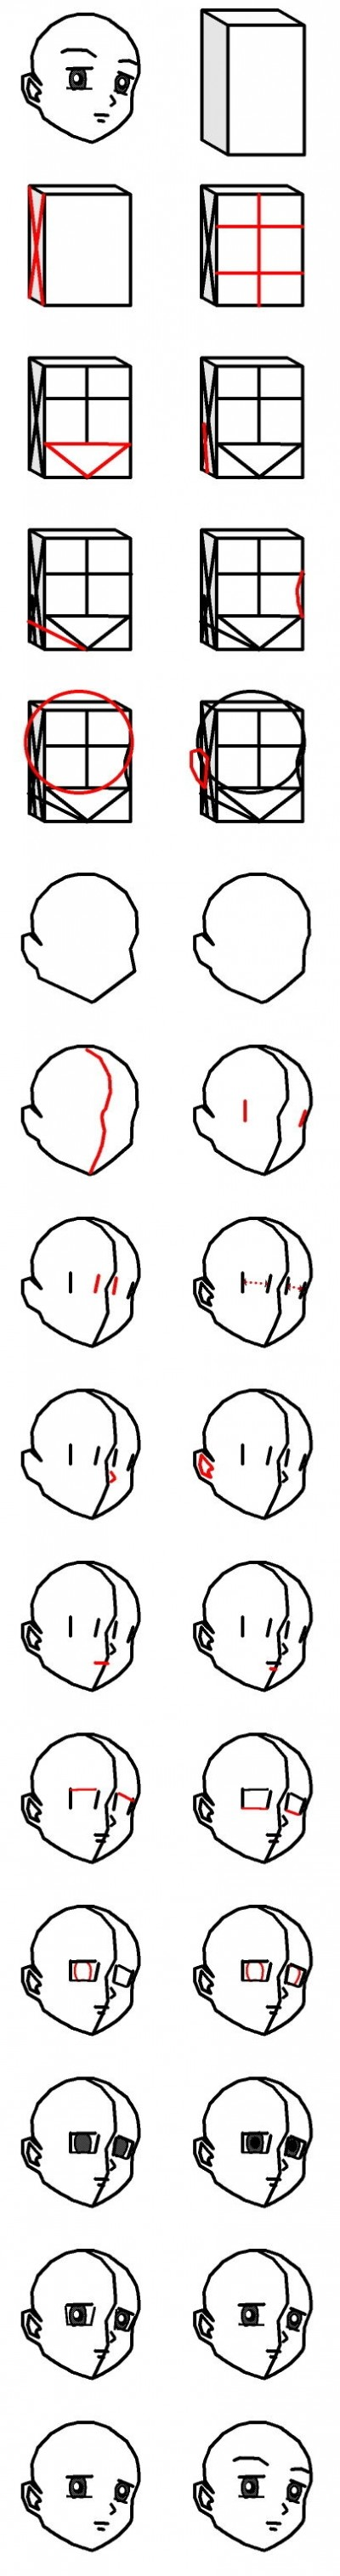 How to draw anime step by step DIY instructions